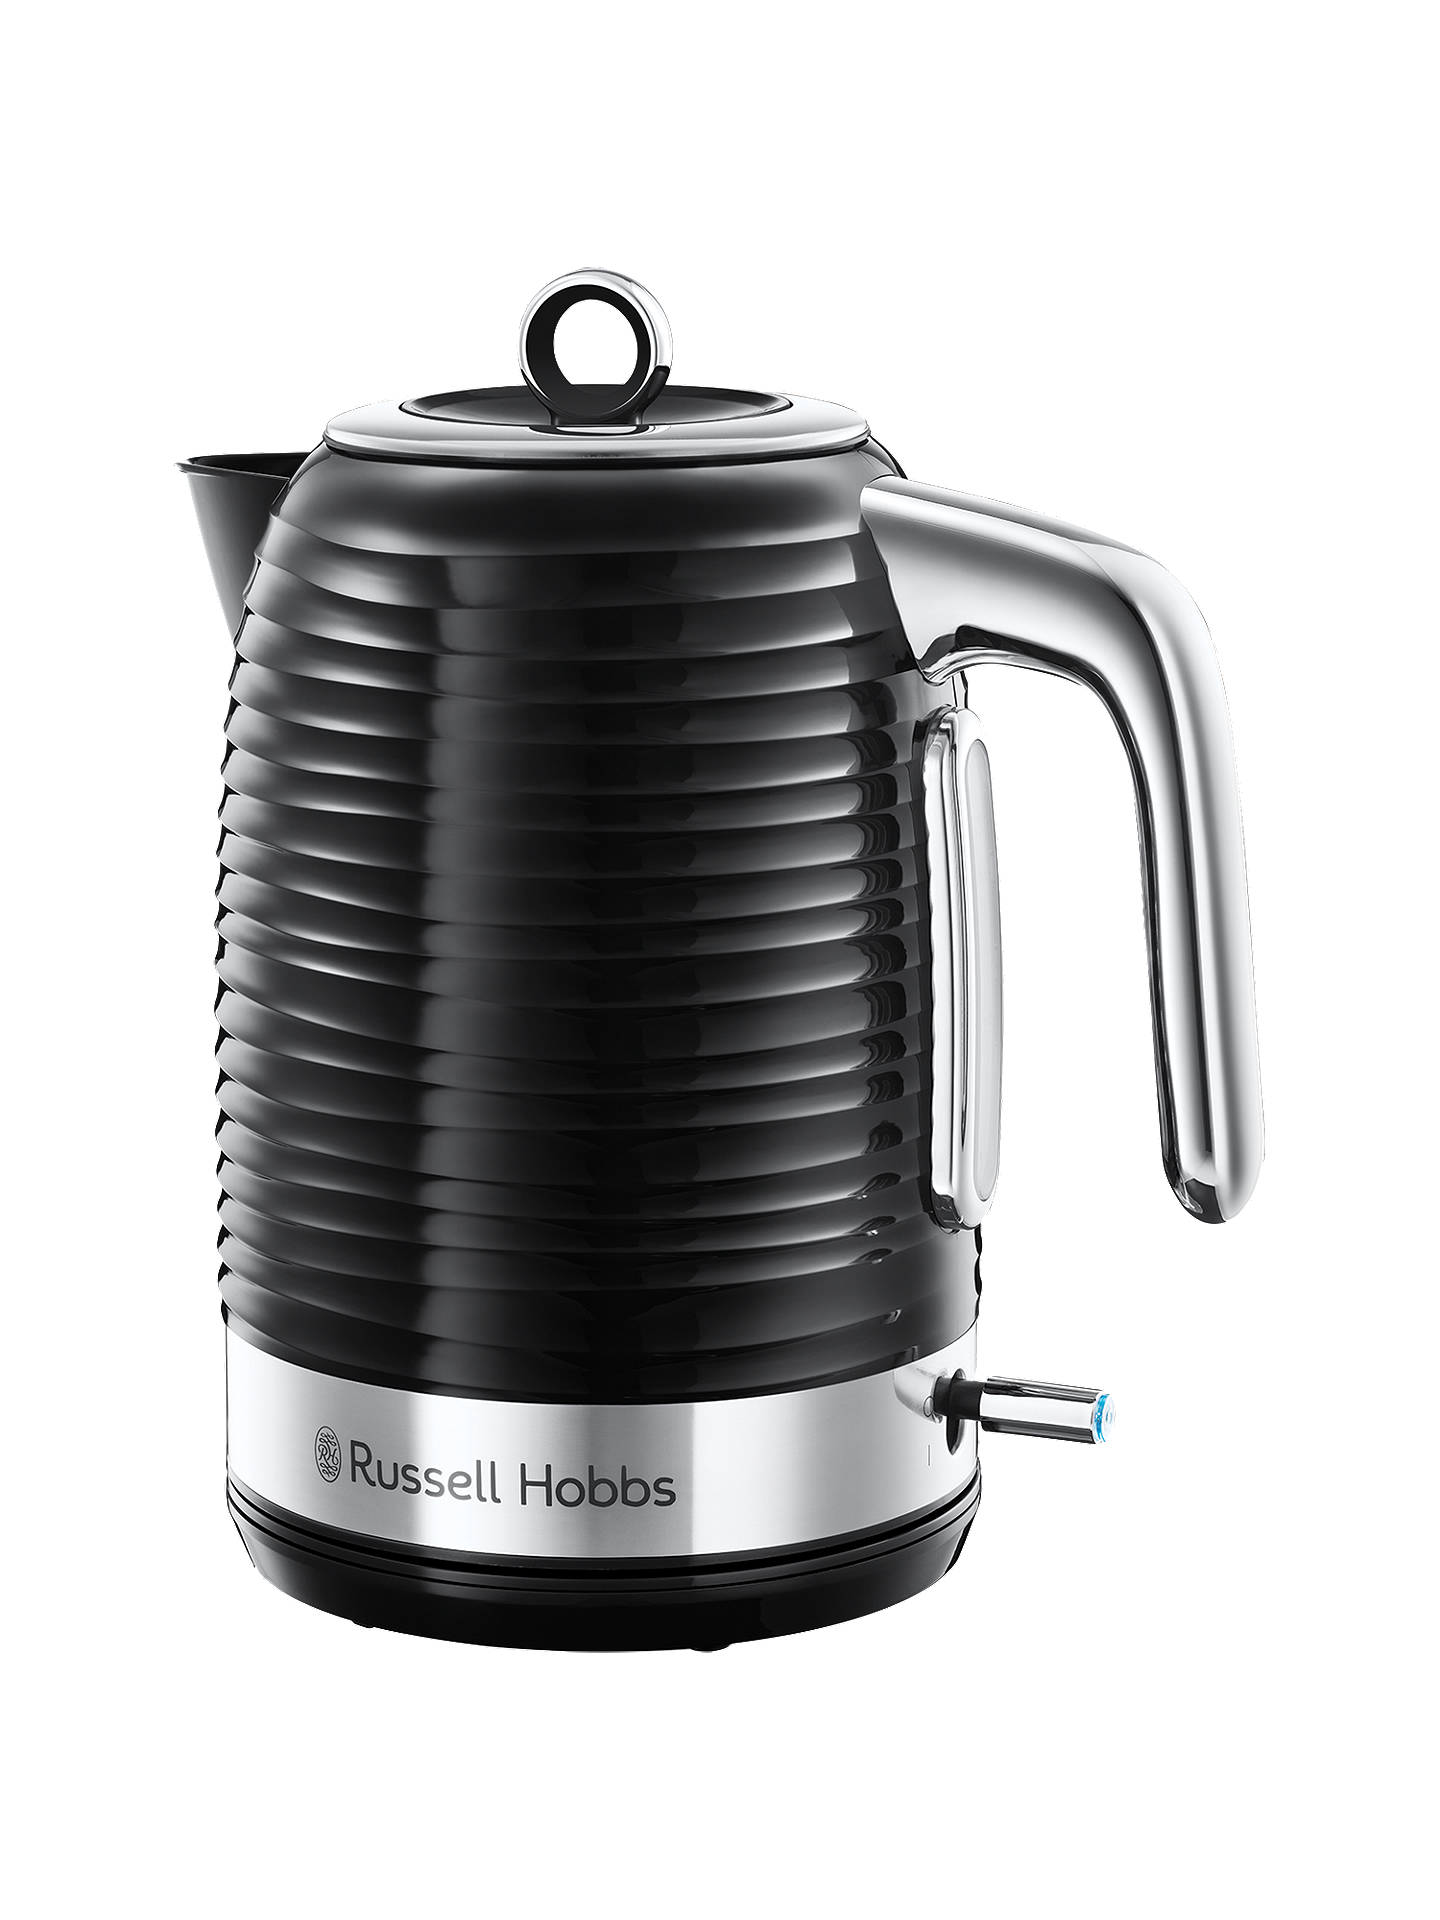 Buy Russell Hobbs Inspire Kettle, Black Online at johnlewis.com